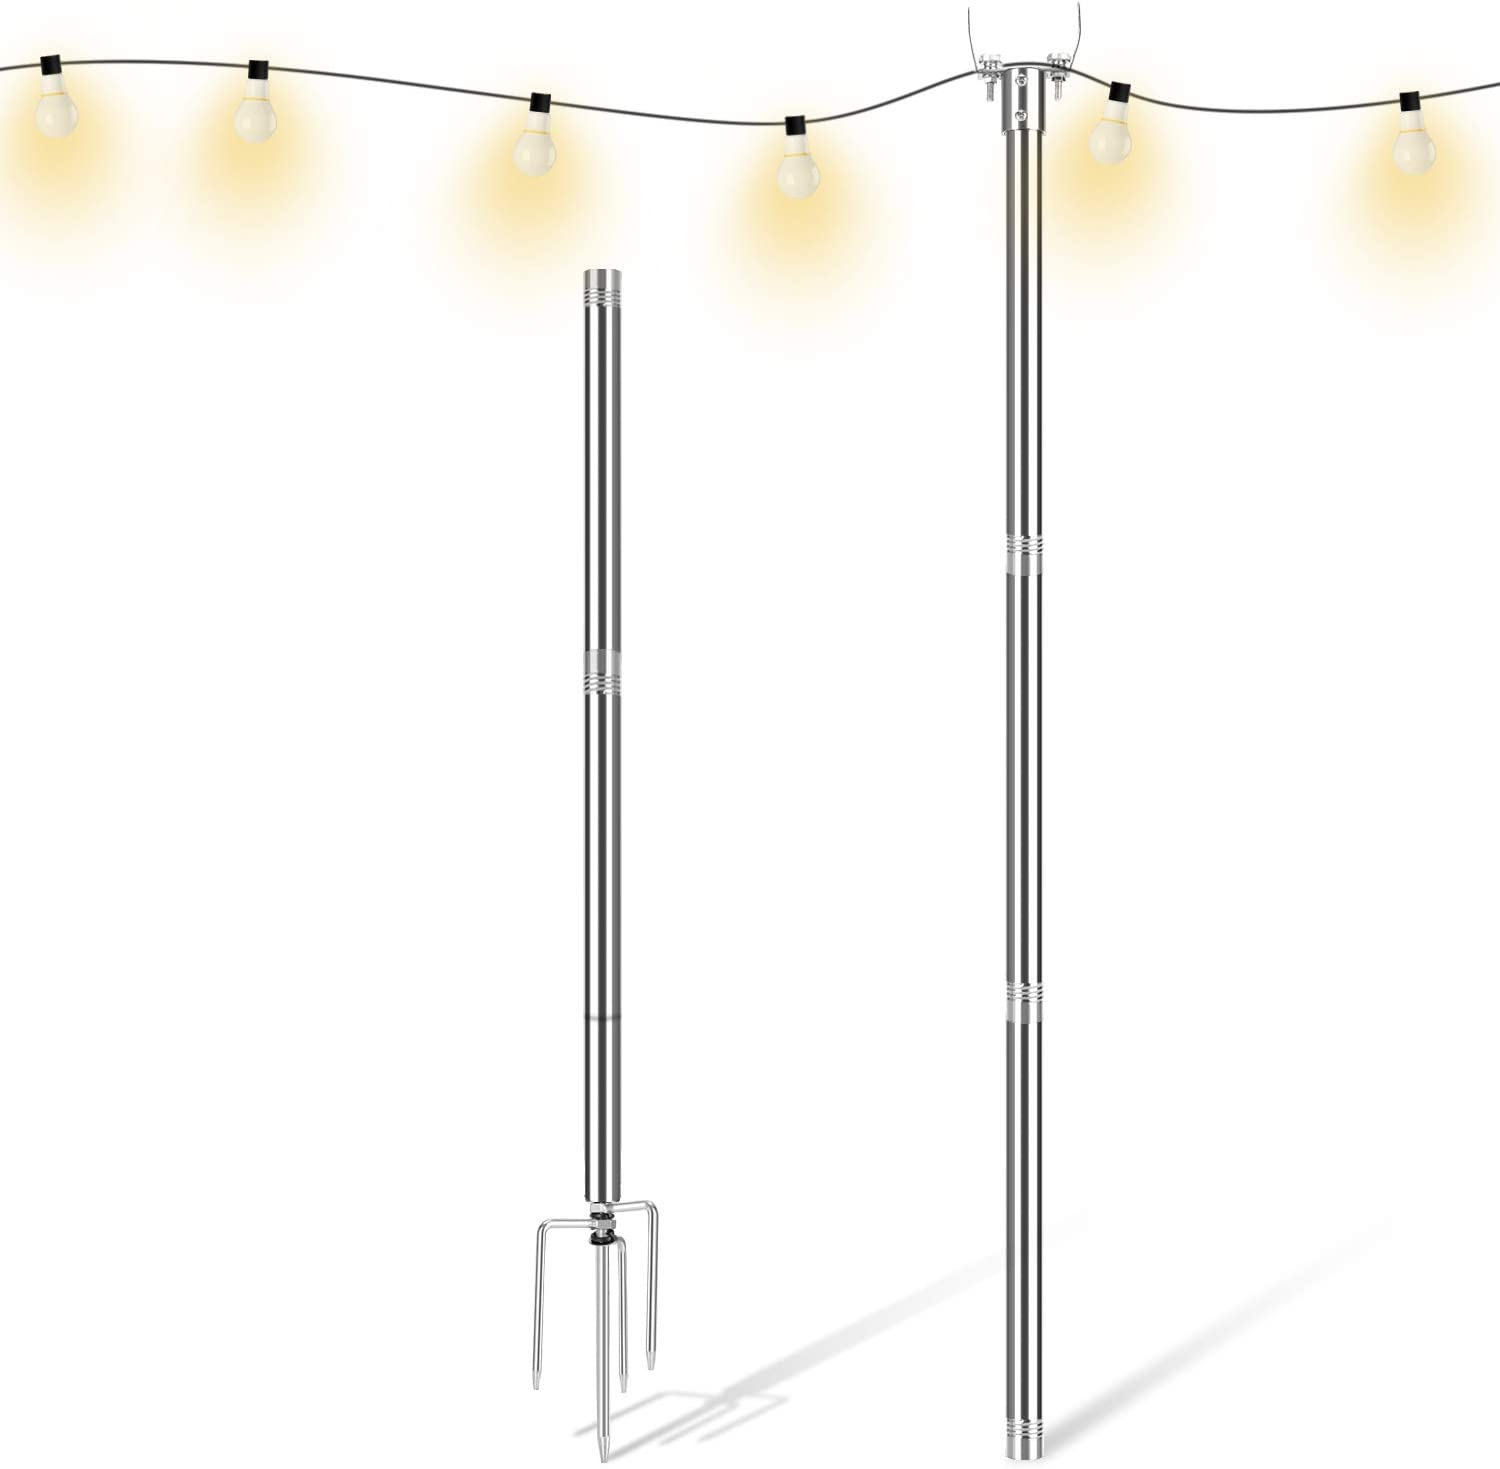 Endim Light Pole - Outdoor 10 FT Light Pole for String Lights - Outside Stainless Steel String Lights Pole for Yard Garden - String Lights Pole Stand for Night Wedding and Party - 1 PCS